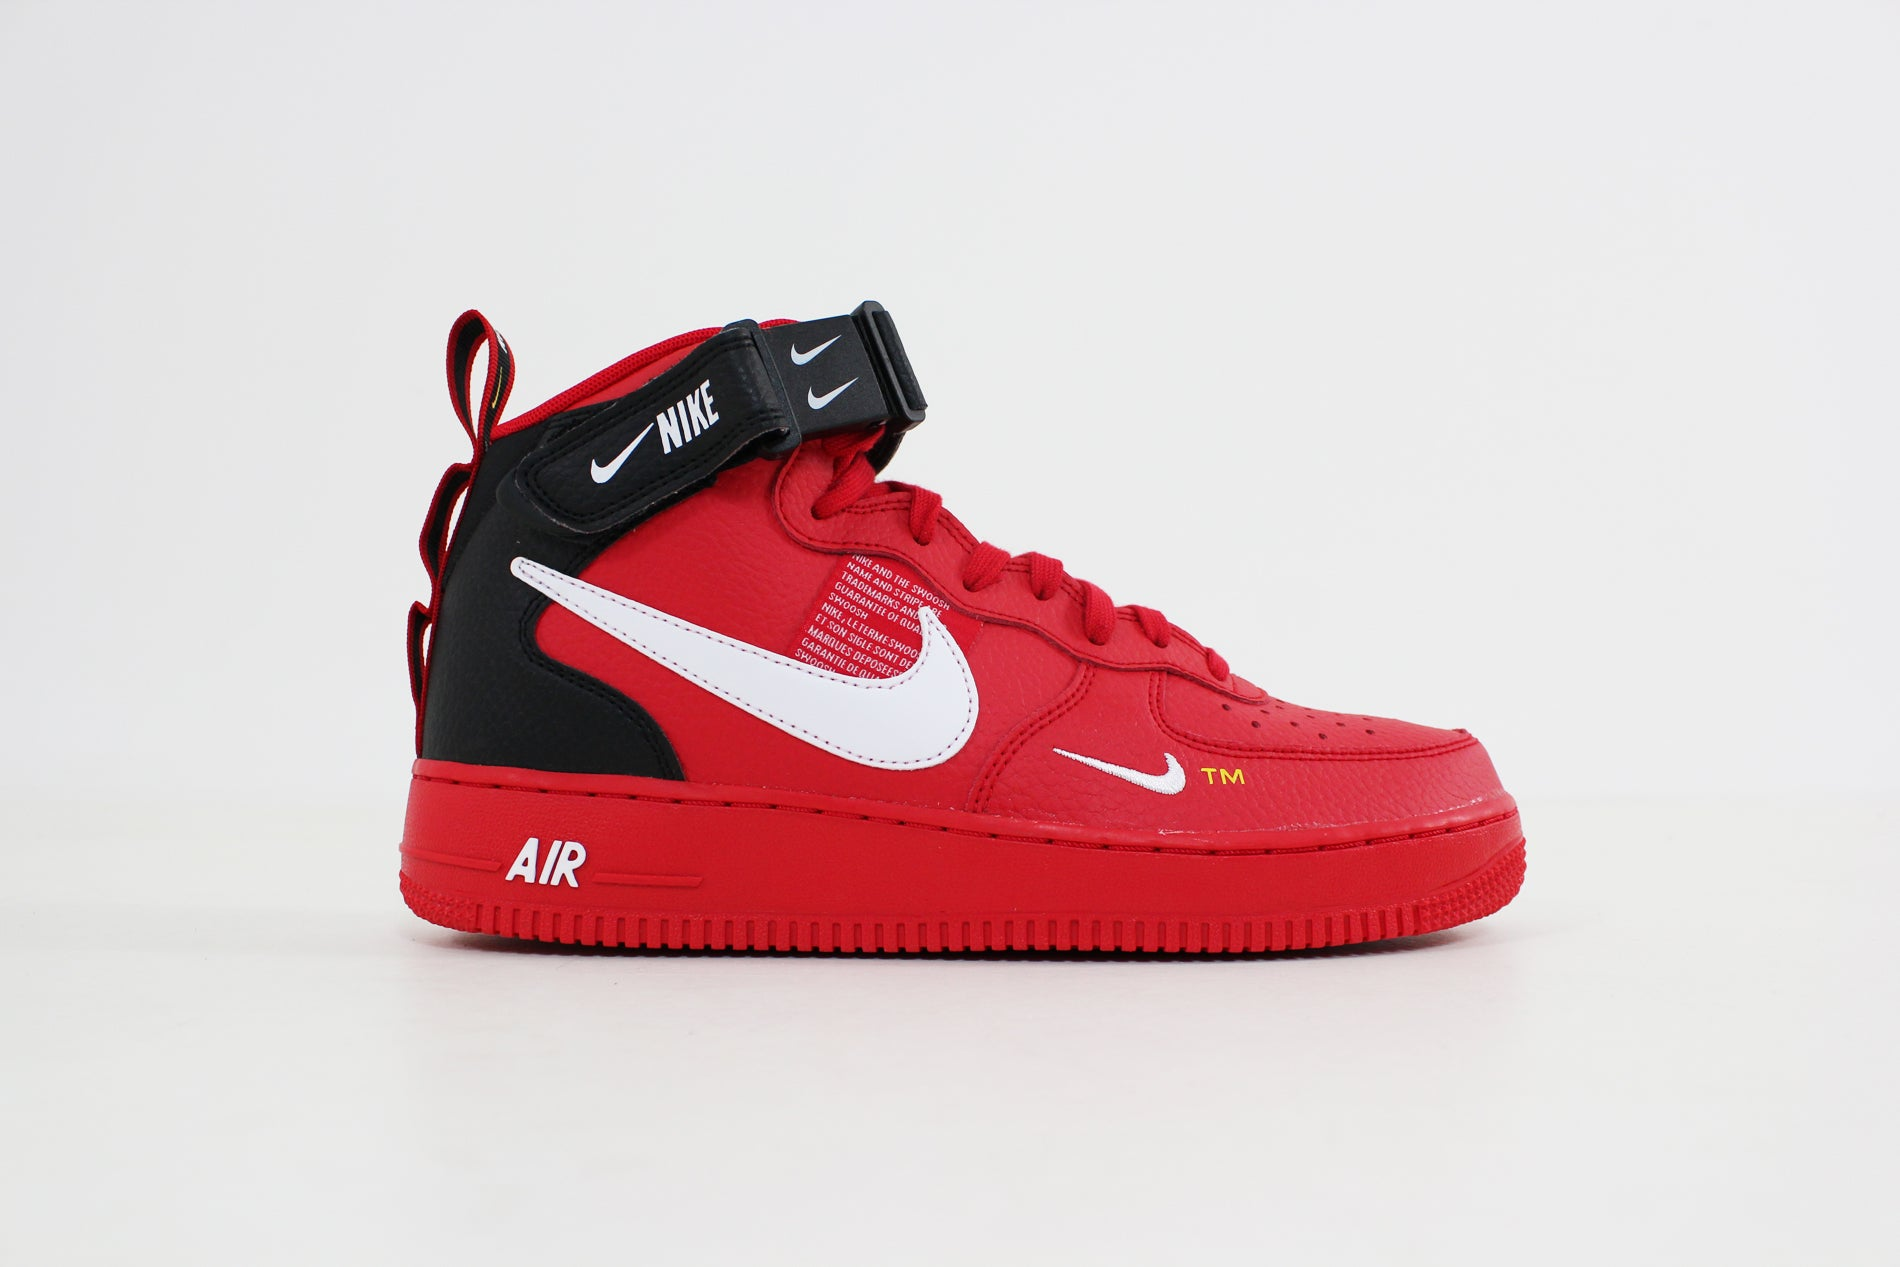 1774e5962f Nike - Air Force 1 Mid 07 LV8 (Uinversity Red/ White Black Tour Yellow)  804609-605